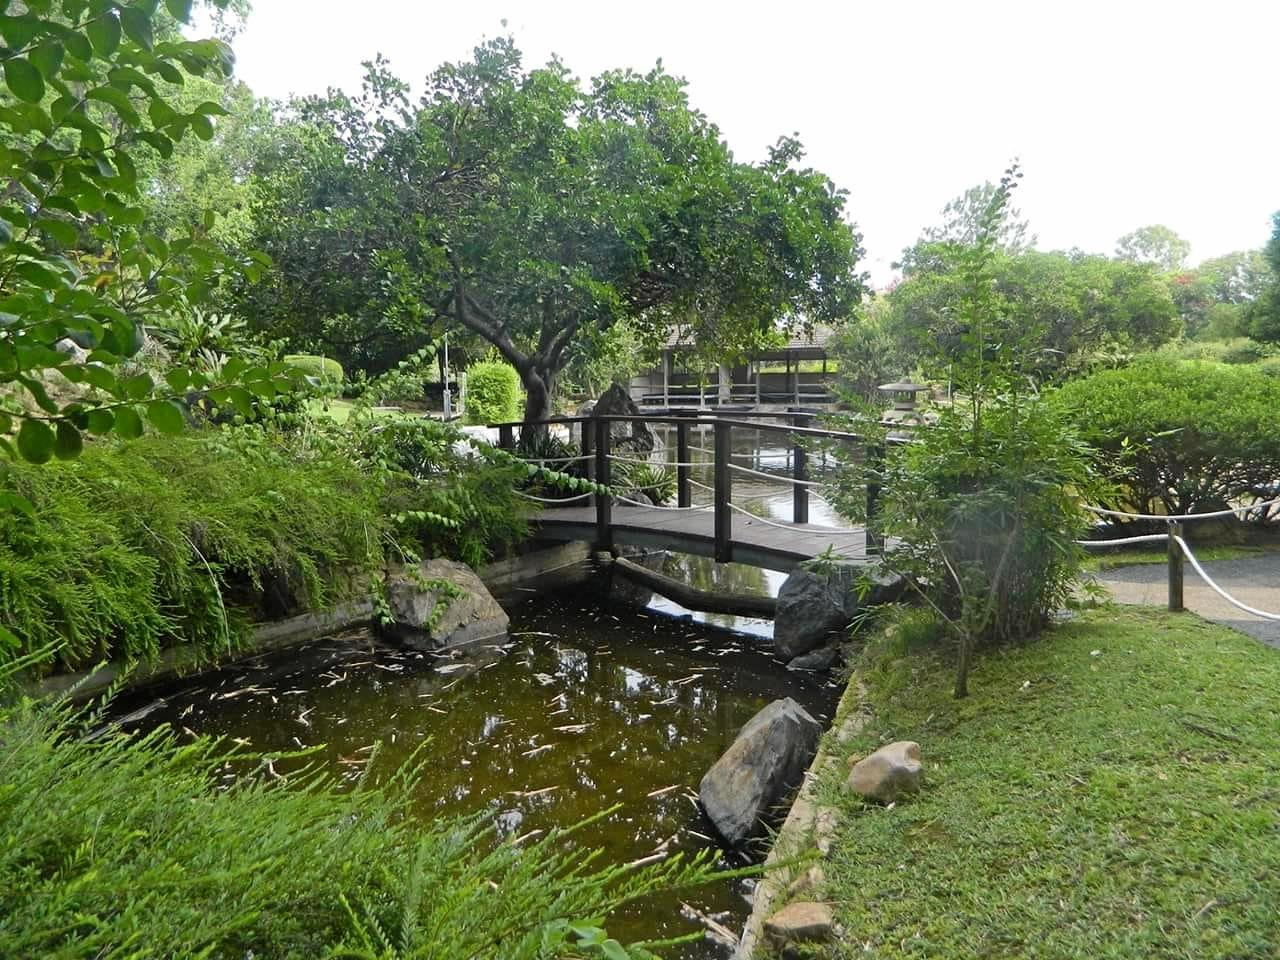 Sharon Casey shared an image of the Japanese Gardens at the Rockhampton Botanic Gardens.